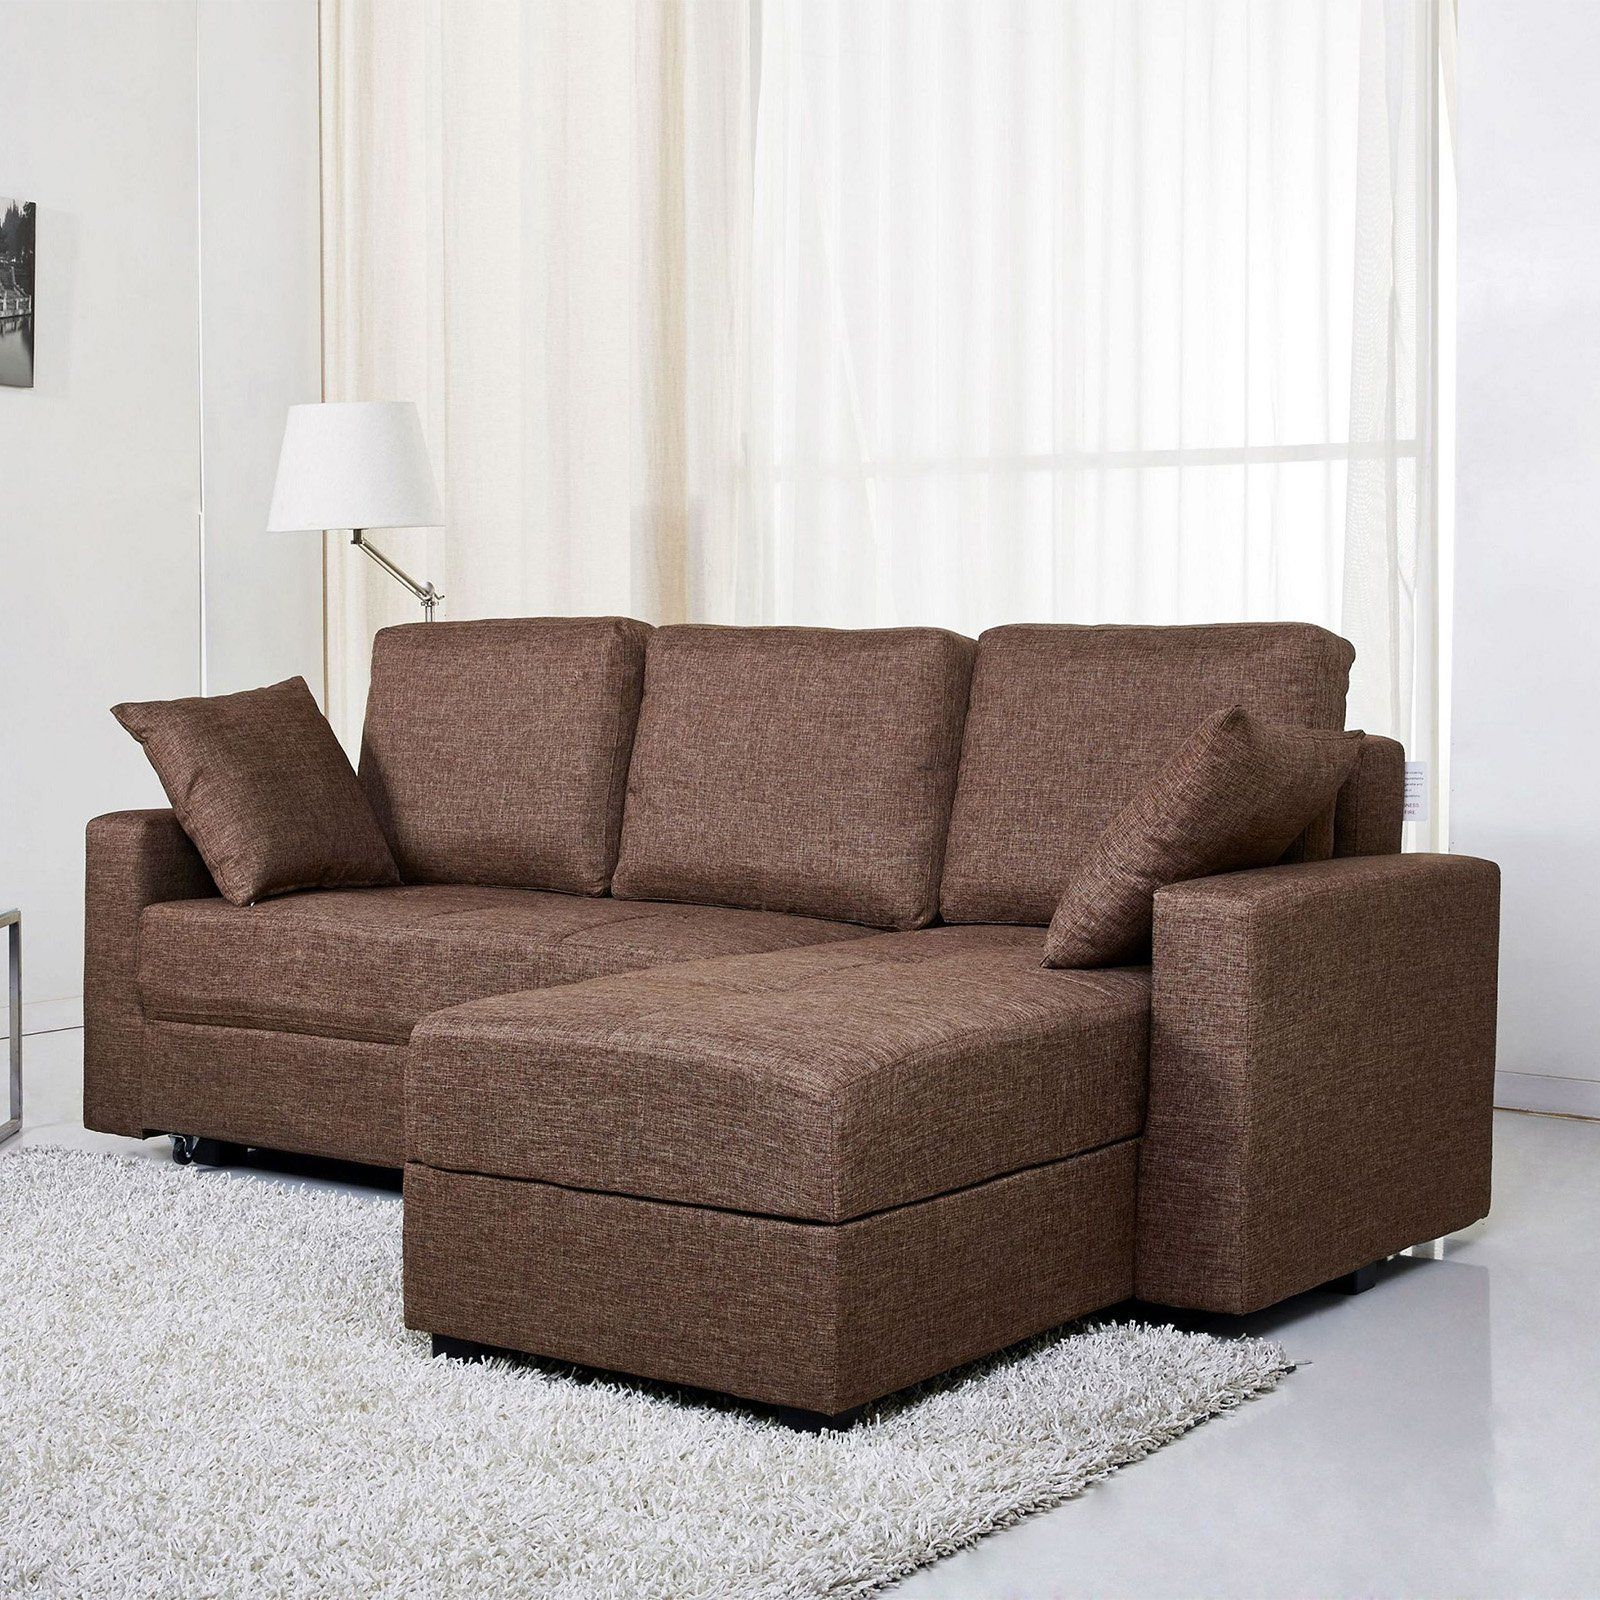 Gold Sparrow Aspen Fabric Convertible Storage Sectional Within Live It Cozy Sectional Sofa Beds With Storage (View 10 of 15)